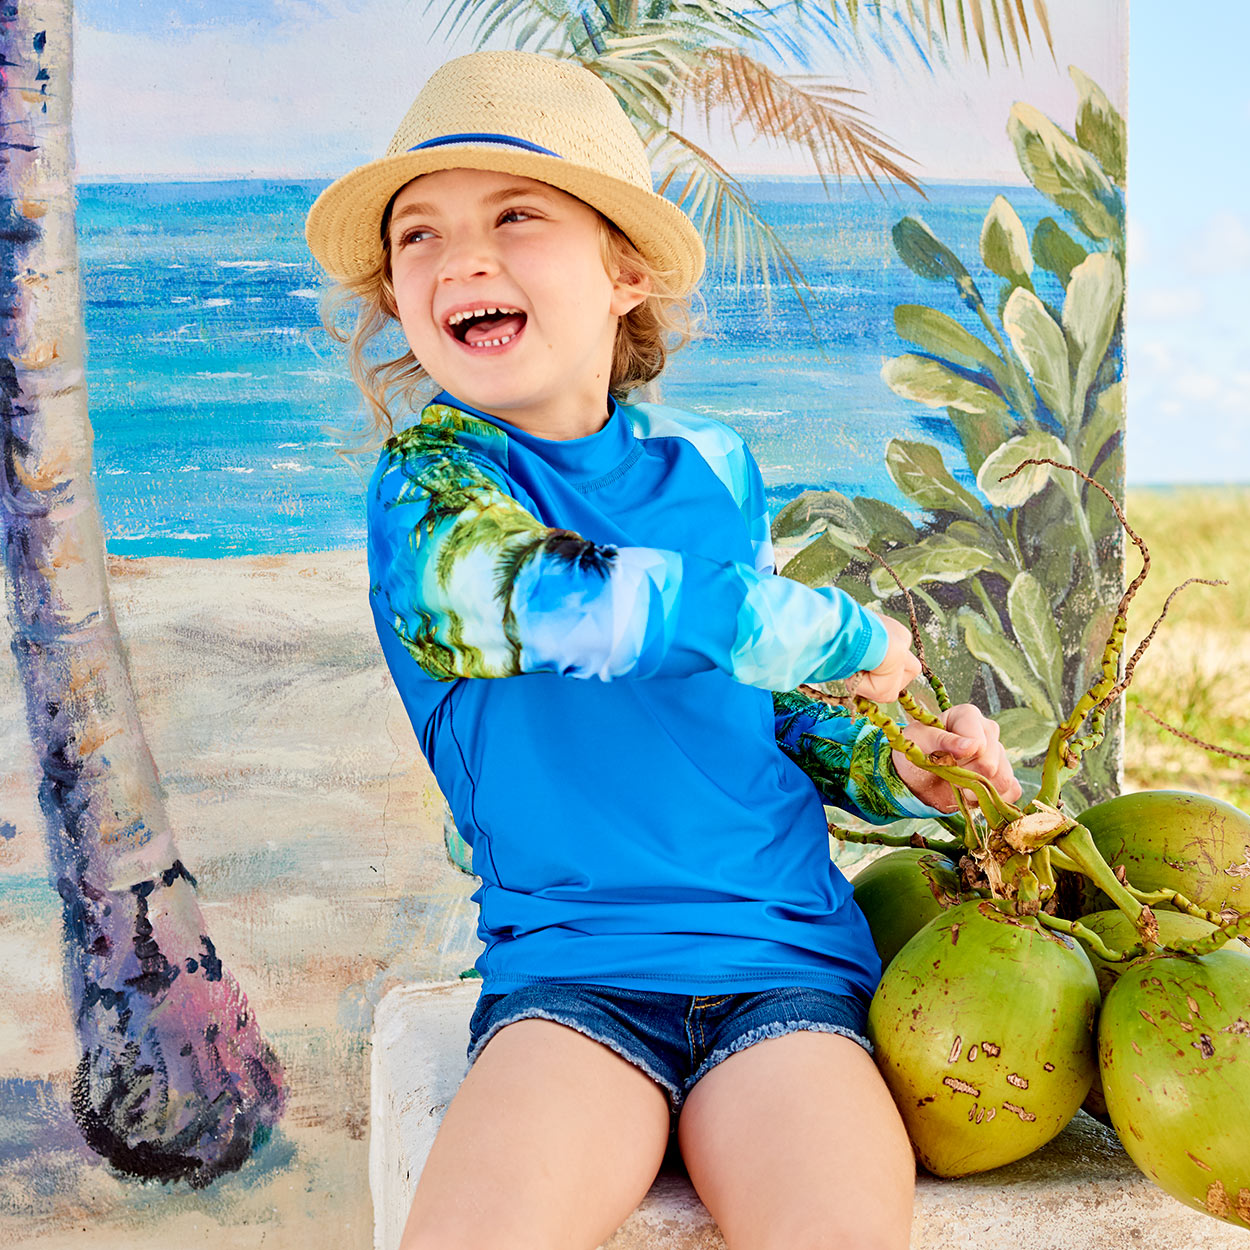 Hawaiian Long Sleeve Rash Guard Top Upf50 Kids Boys Girls Size 2 12 Unisex Green Blue Palm Trees Geo Tropical Girl Wearing A Hat Sitting Against A Beach Scene Holding Coconuts Sunpoplife